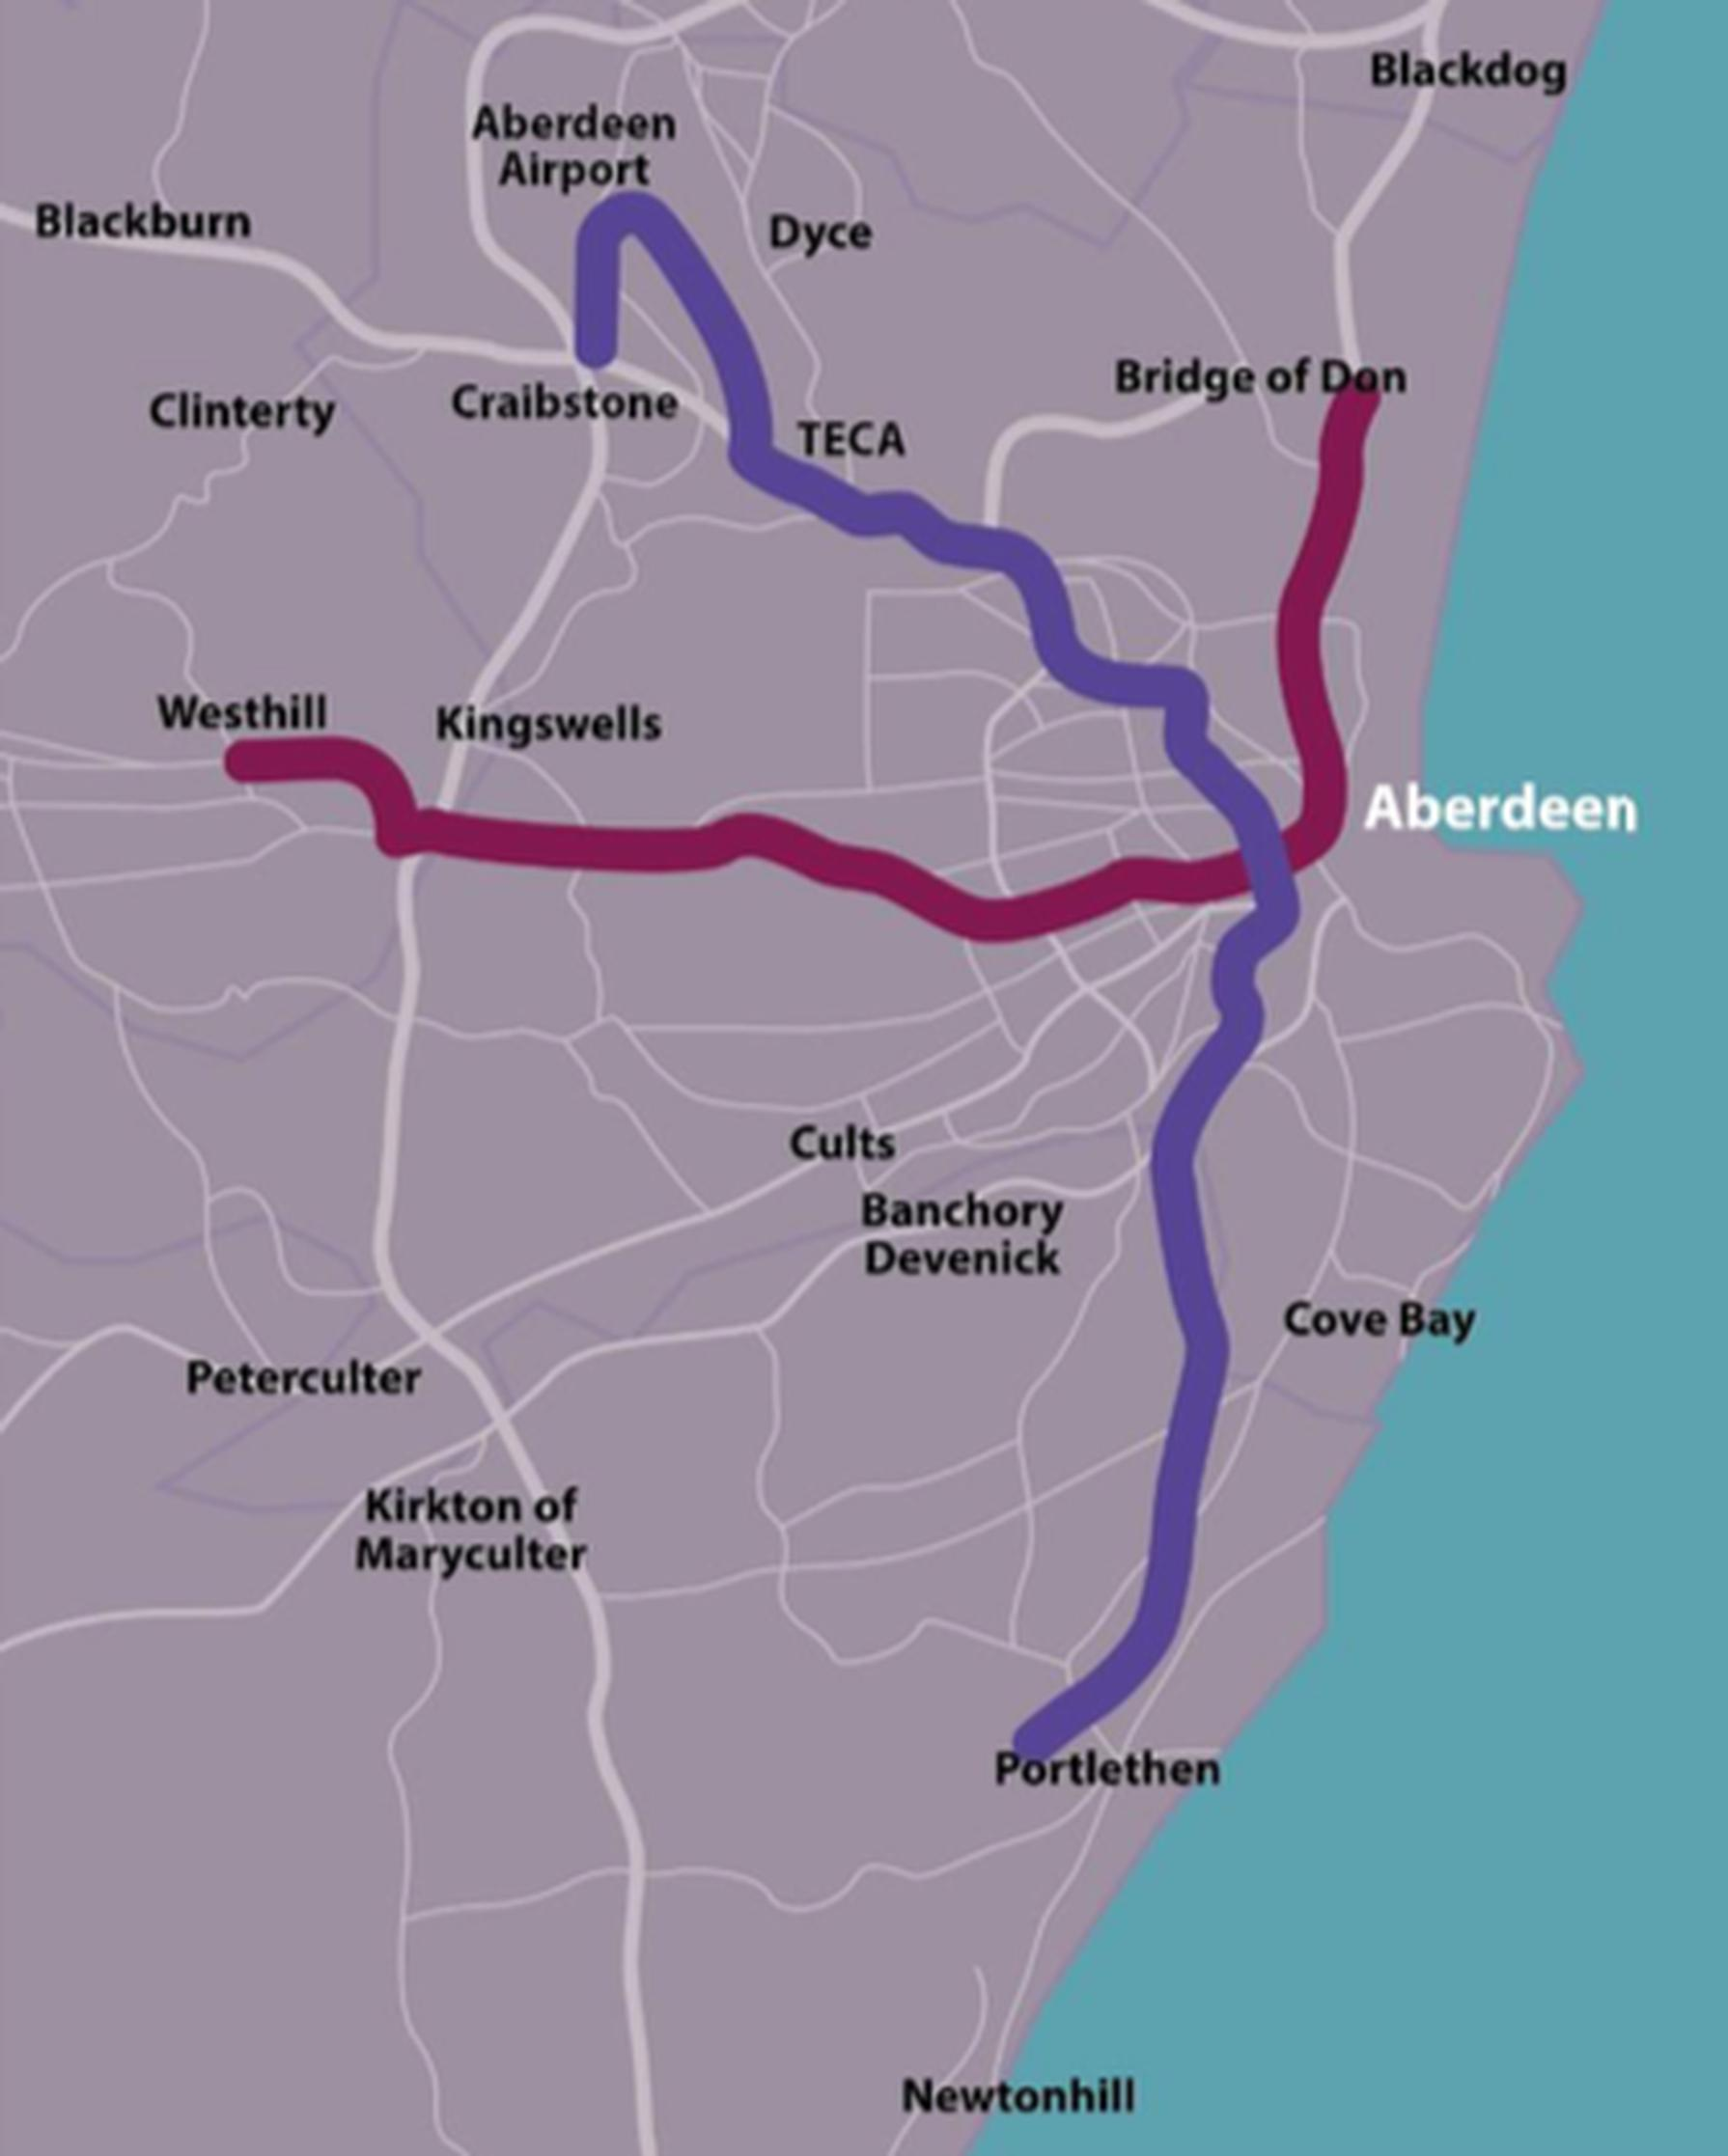 Indicative potential routes for Aberdeen Rapid Transit (ART)